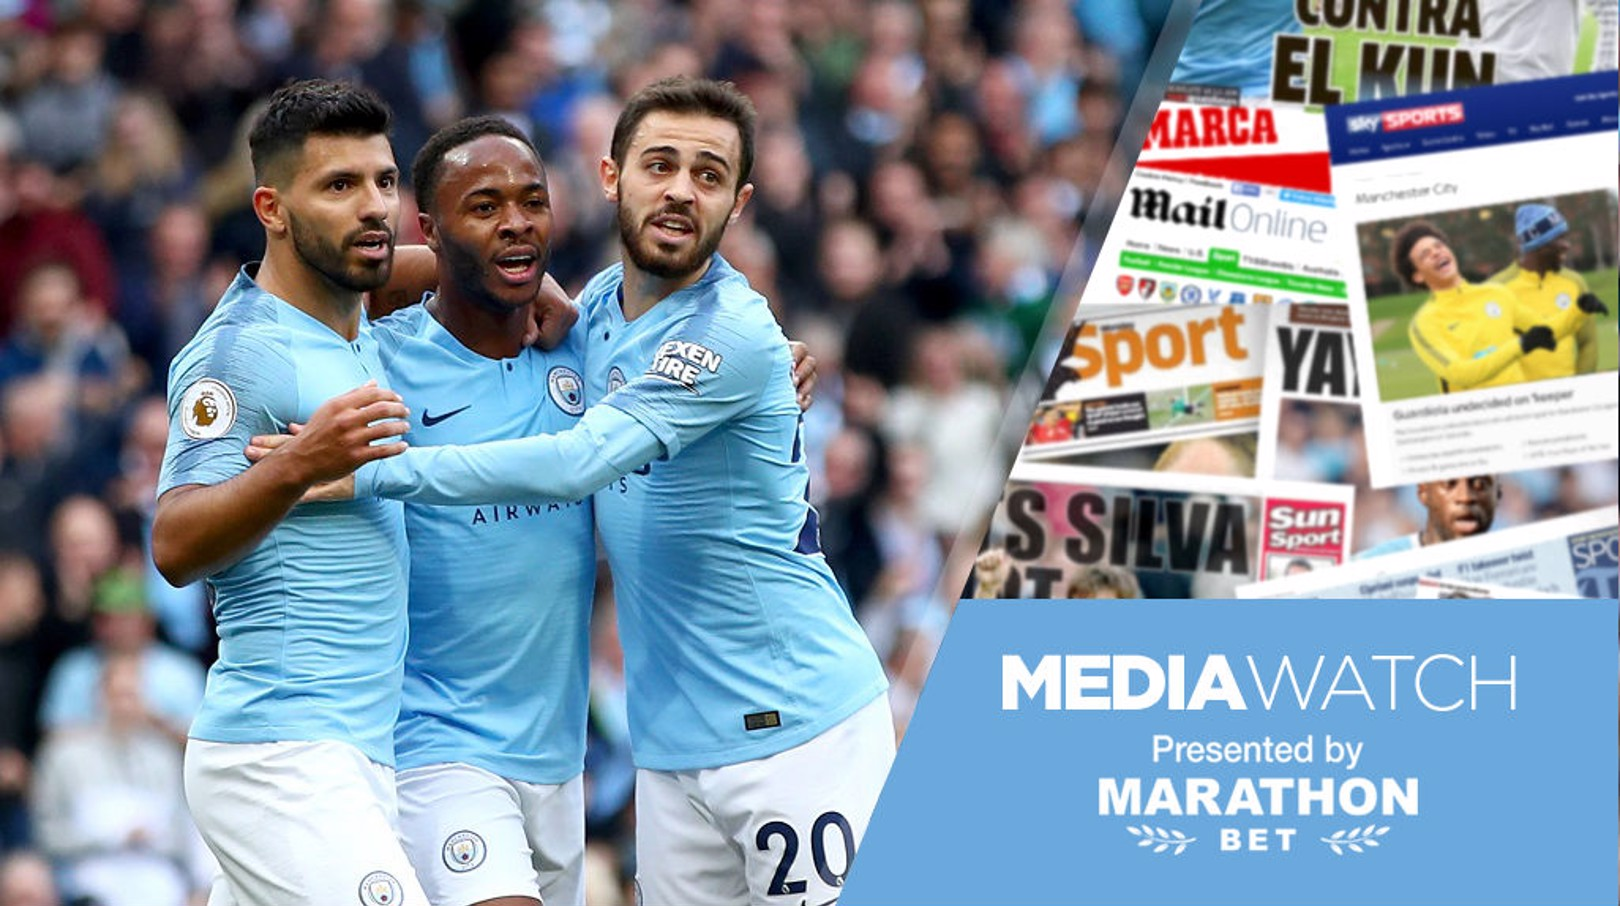 BBC Sport: Stats suggest City are getting stronger